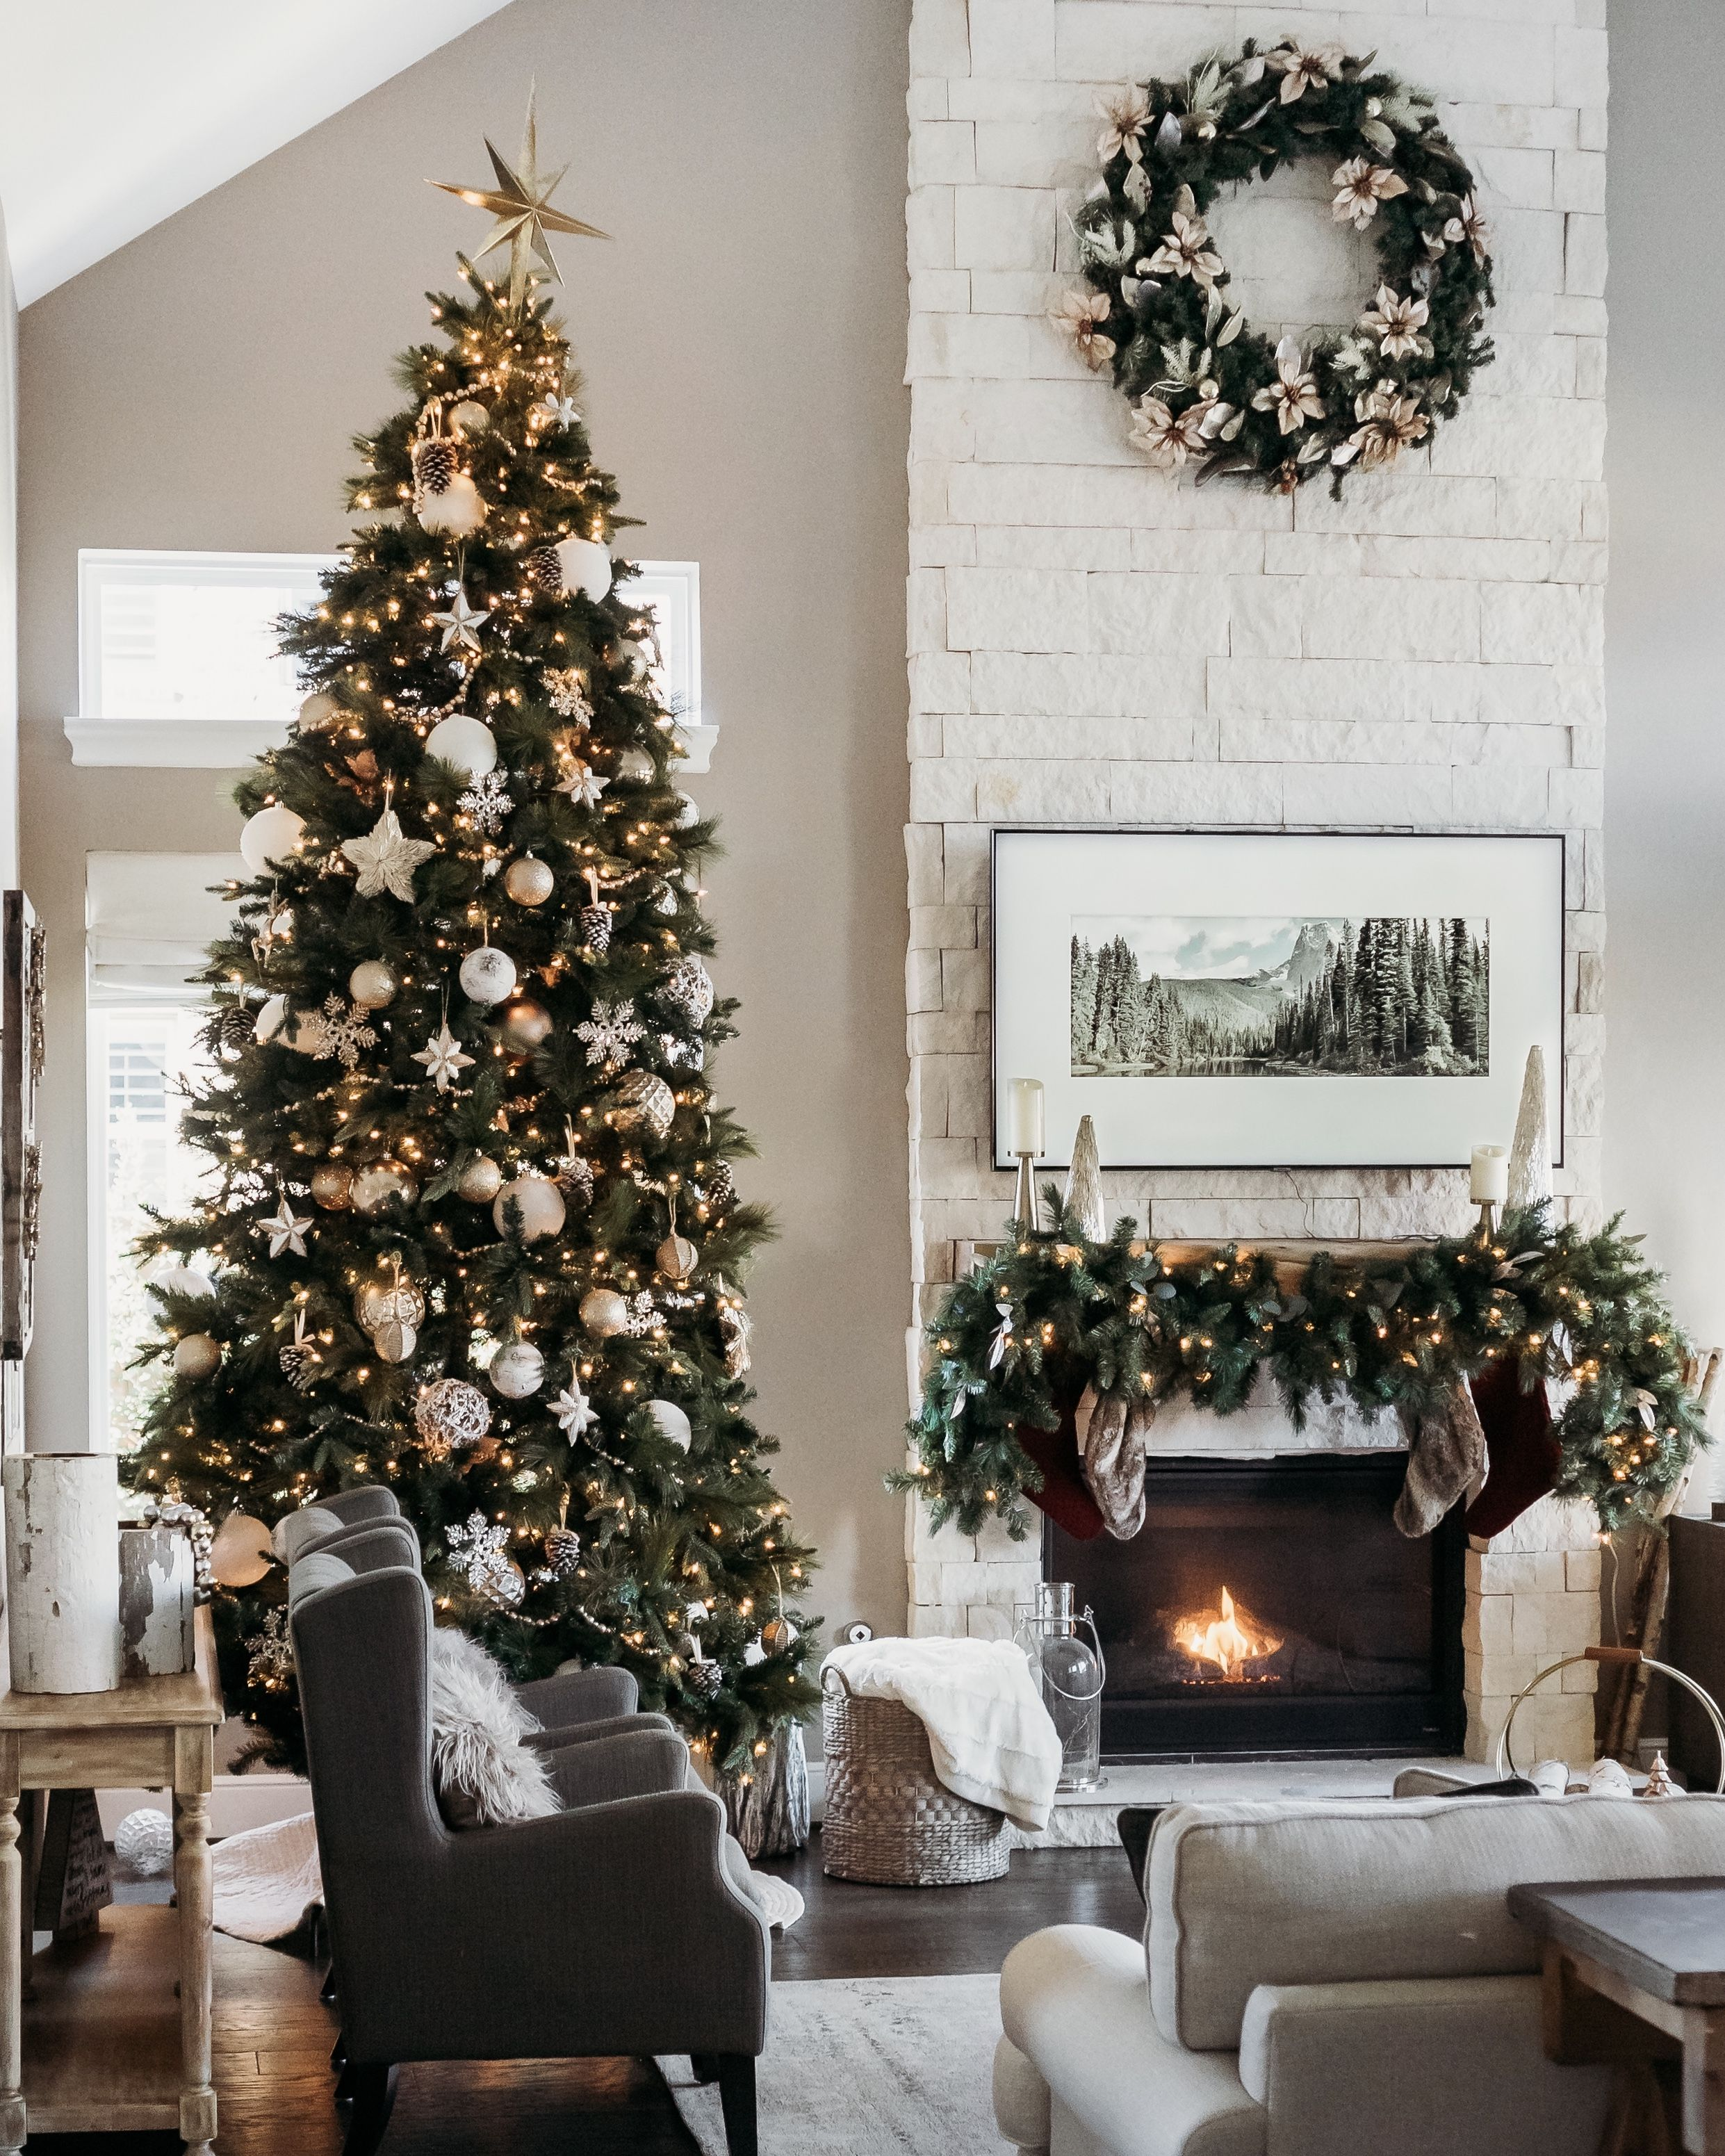 Clean Neutral And Modern Living Room Holiday Decor Diy Christmas Tree Topper Holiday Living Room Decor Farmhouse Christmas Tree Diy Christmas Tree Topper